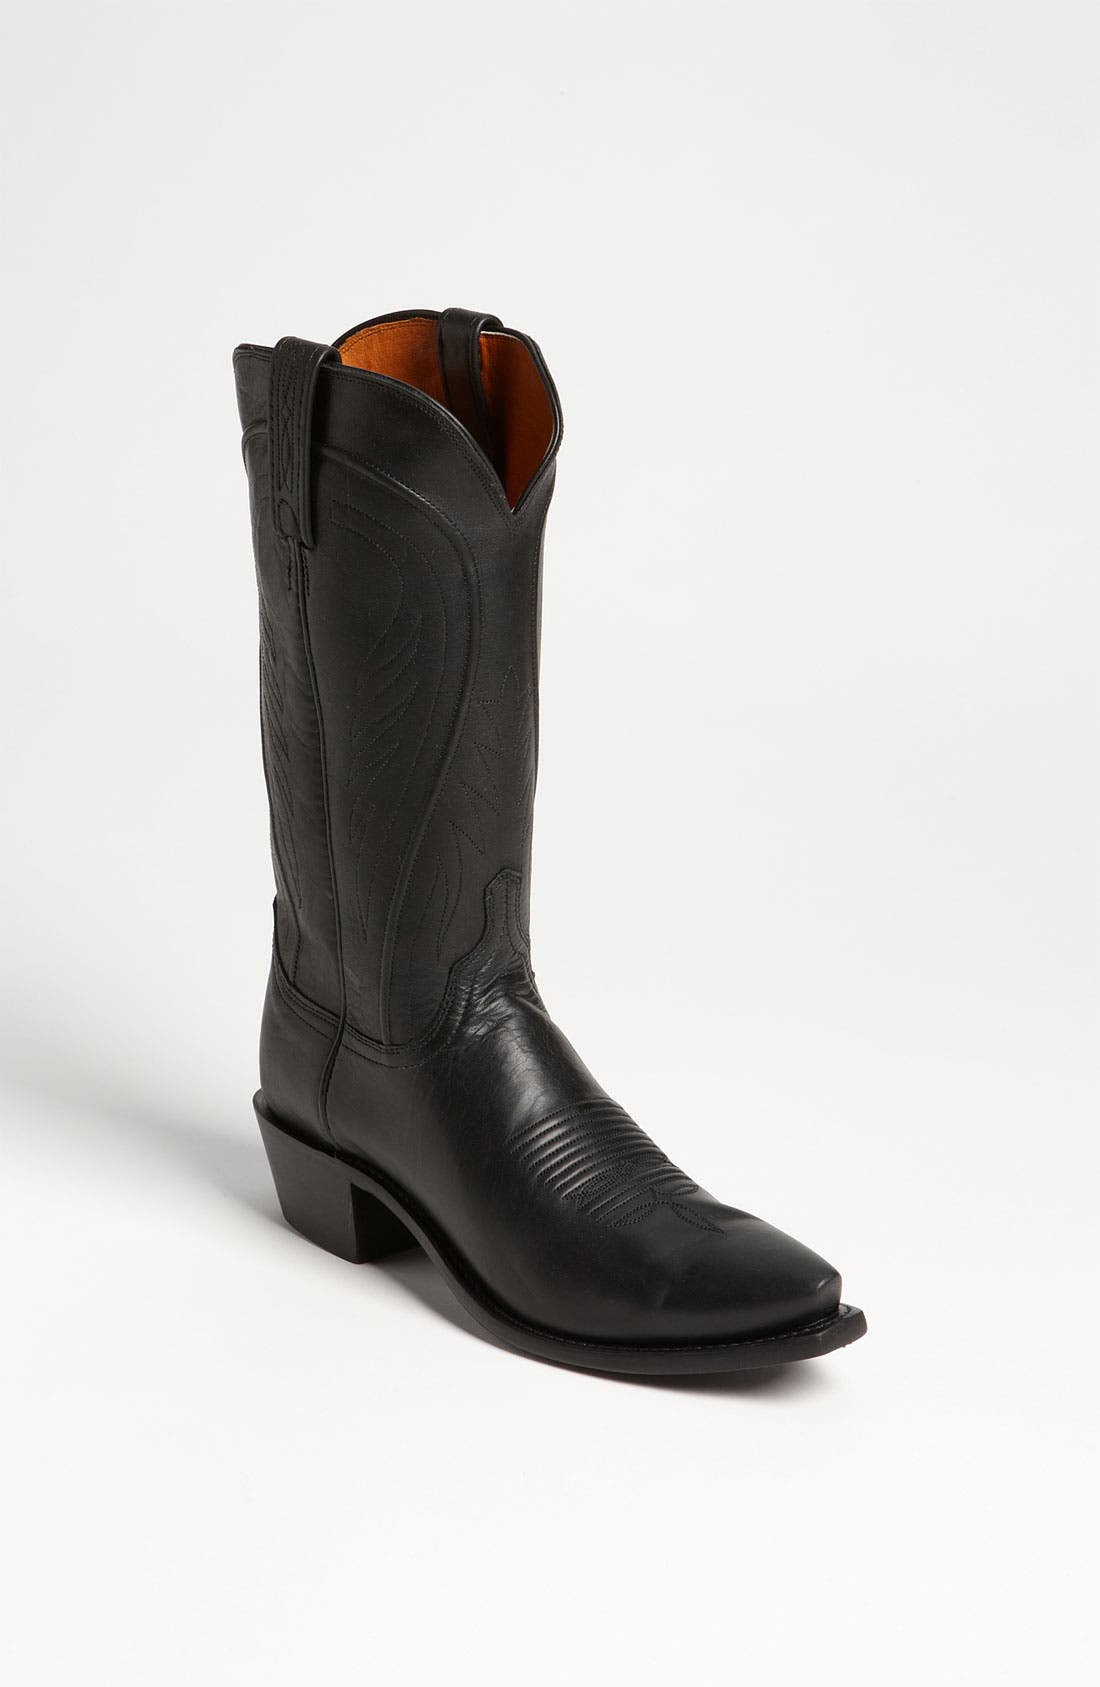 Main Image - Lucchese 'Seville' Boot